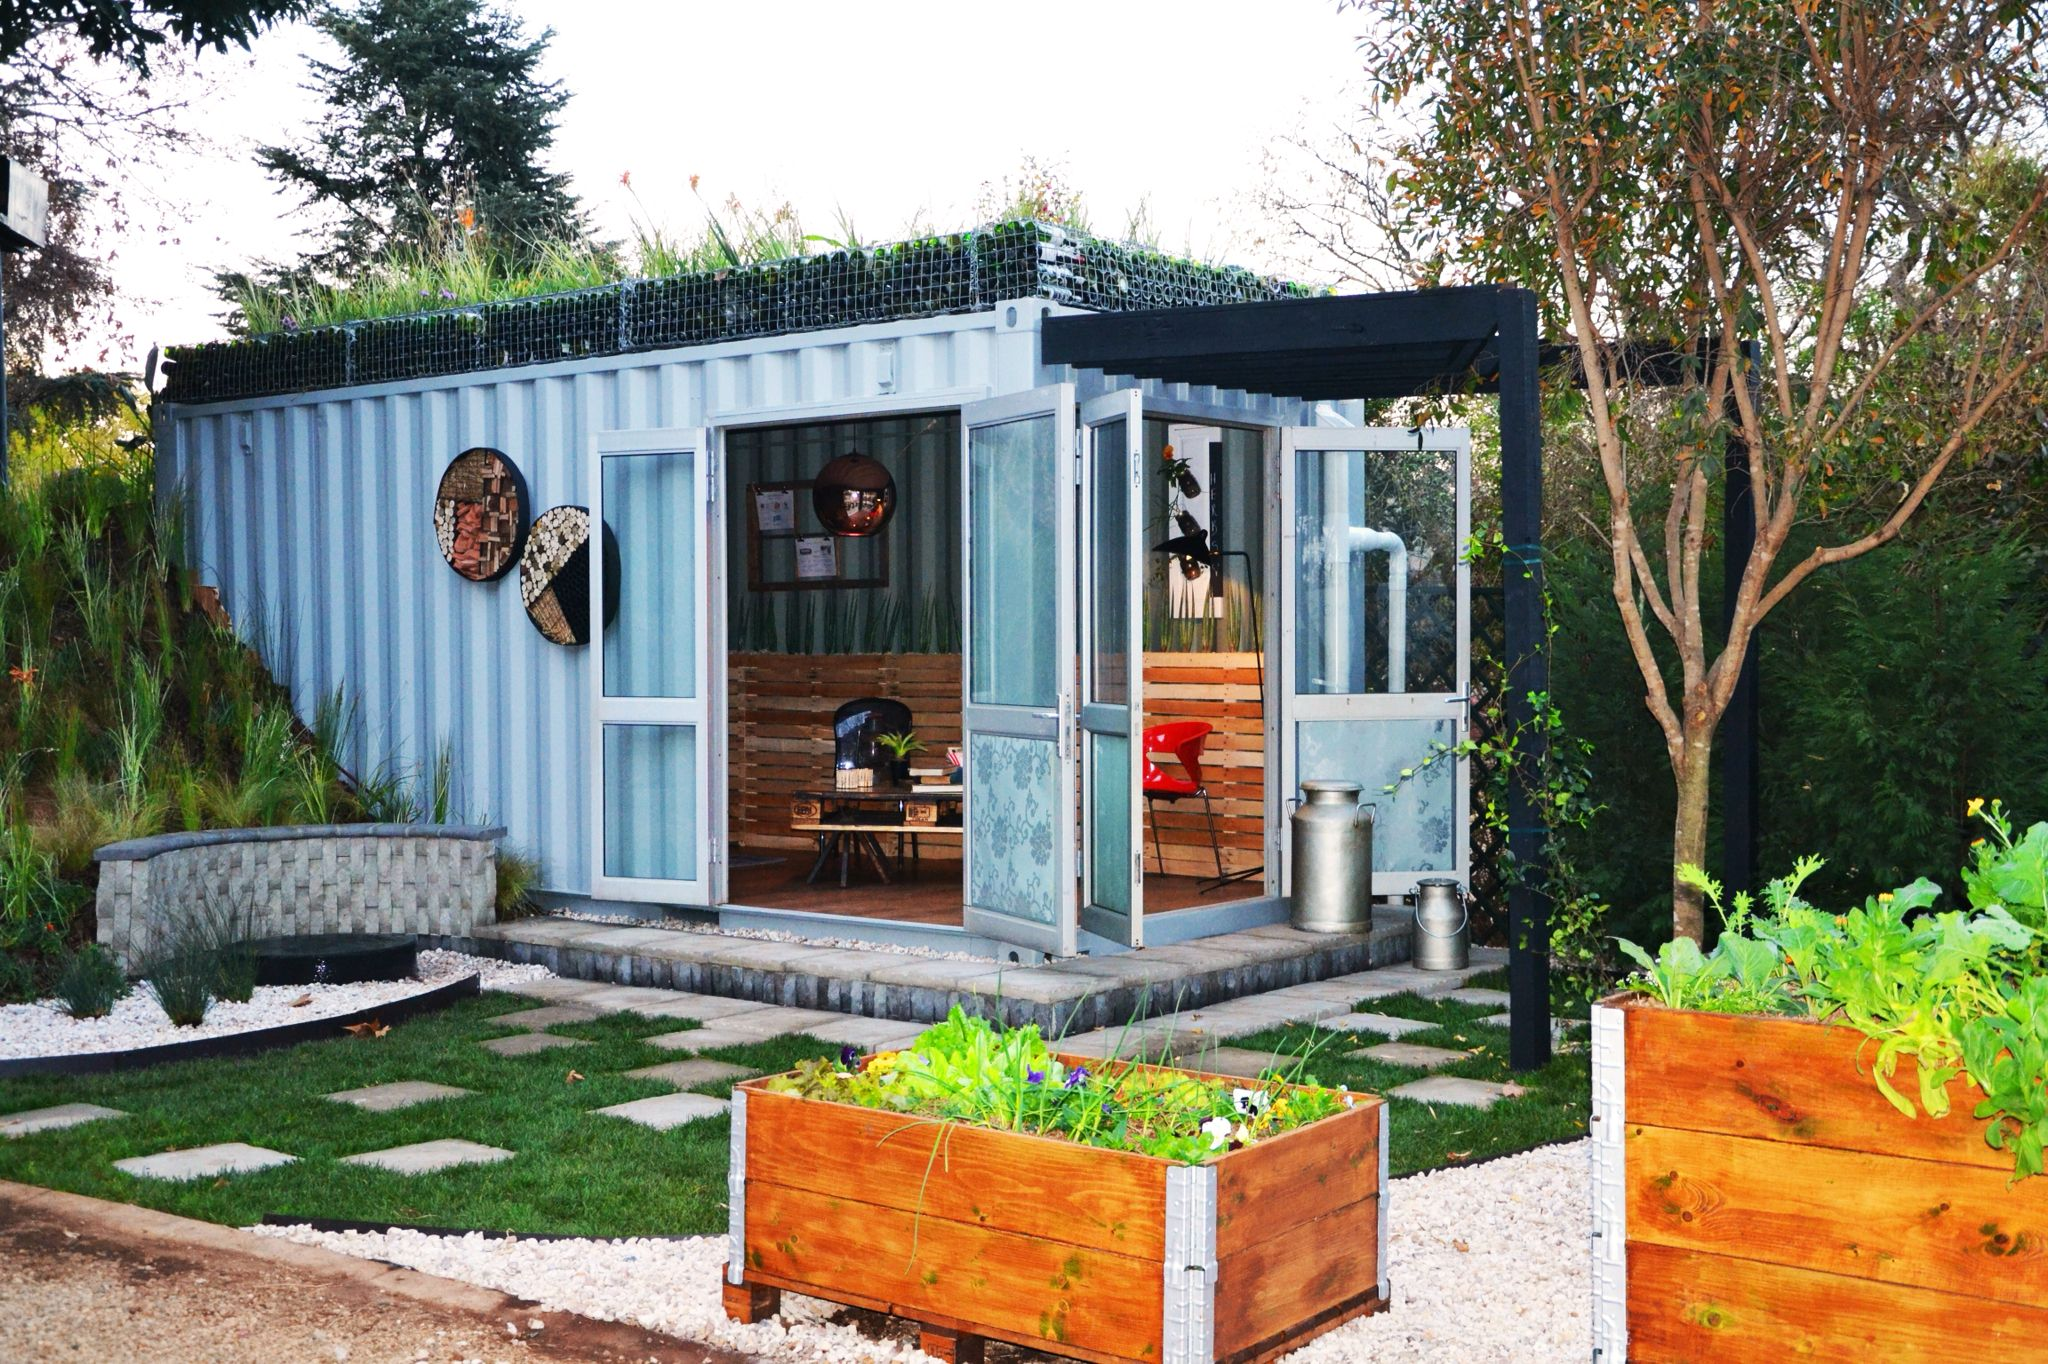 See Container Haus Shipping Container Converted Into An Outdoor Living Space